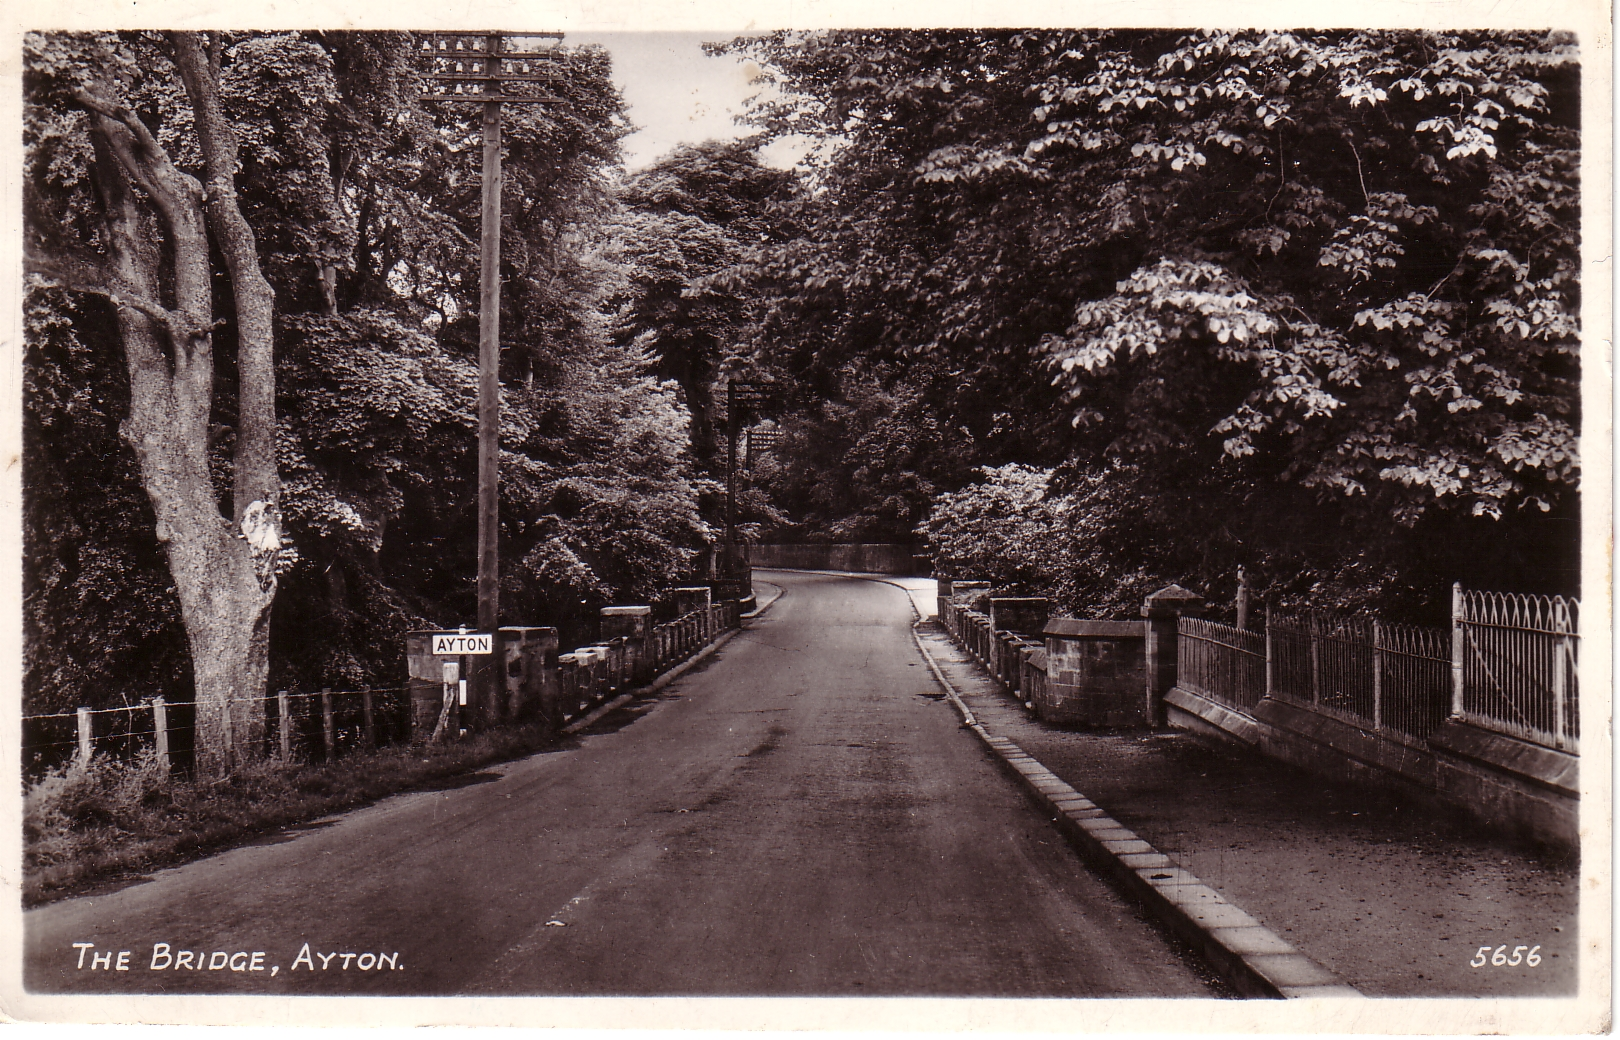 The Bridge Ayton